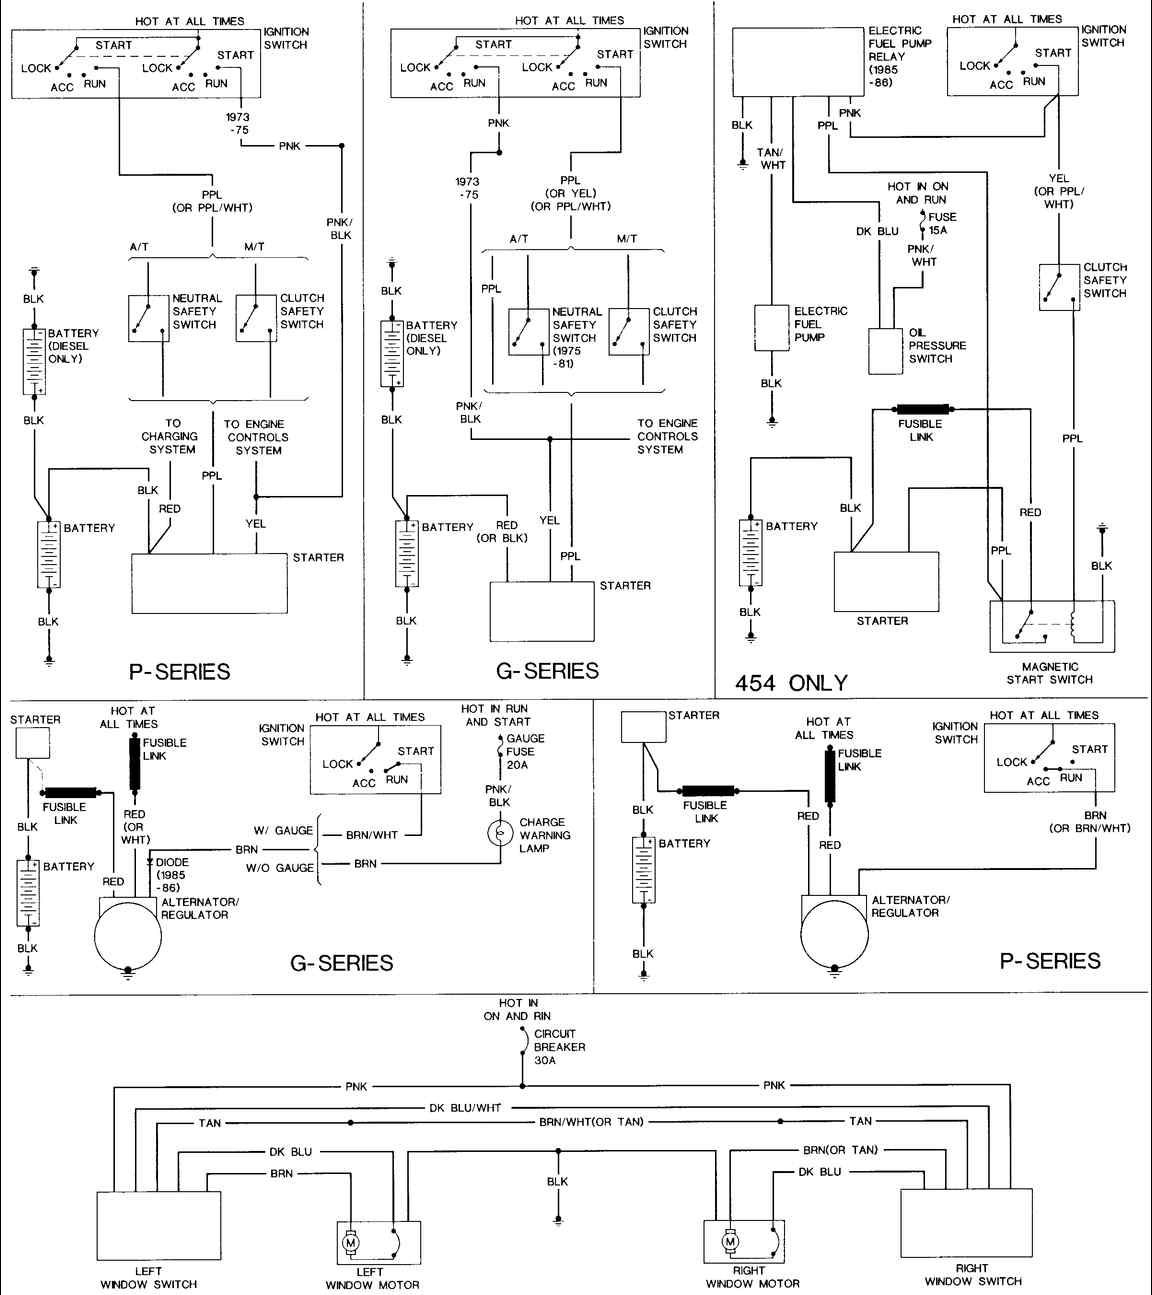 0c73623a181dc376dbb4777e2029d285 85 chevy truck wiring diagram 85 chevy van the steering column chevy 350 wiring diagram at readyjetset.co